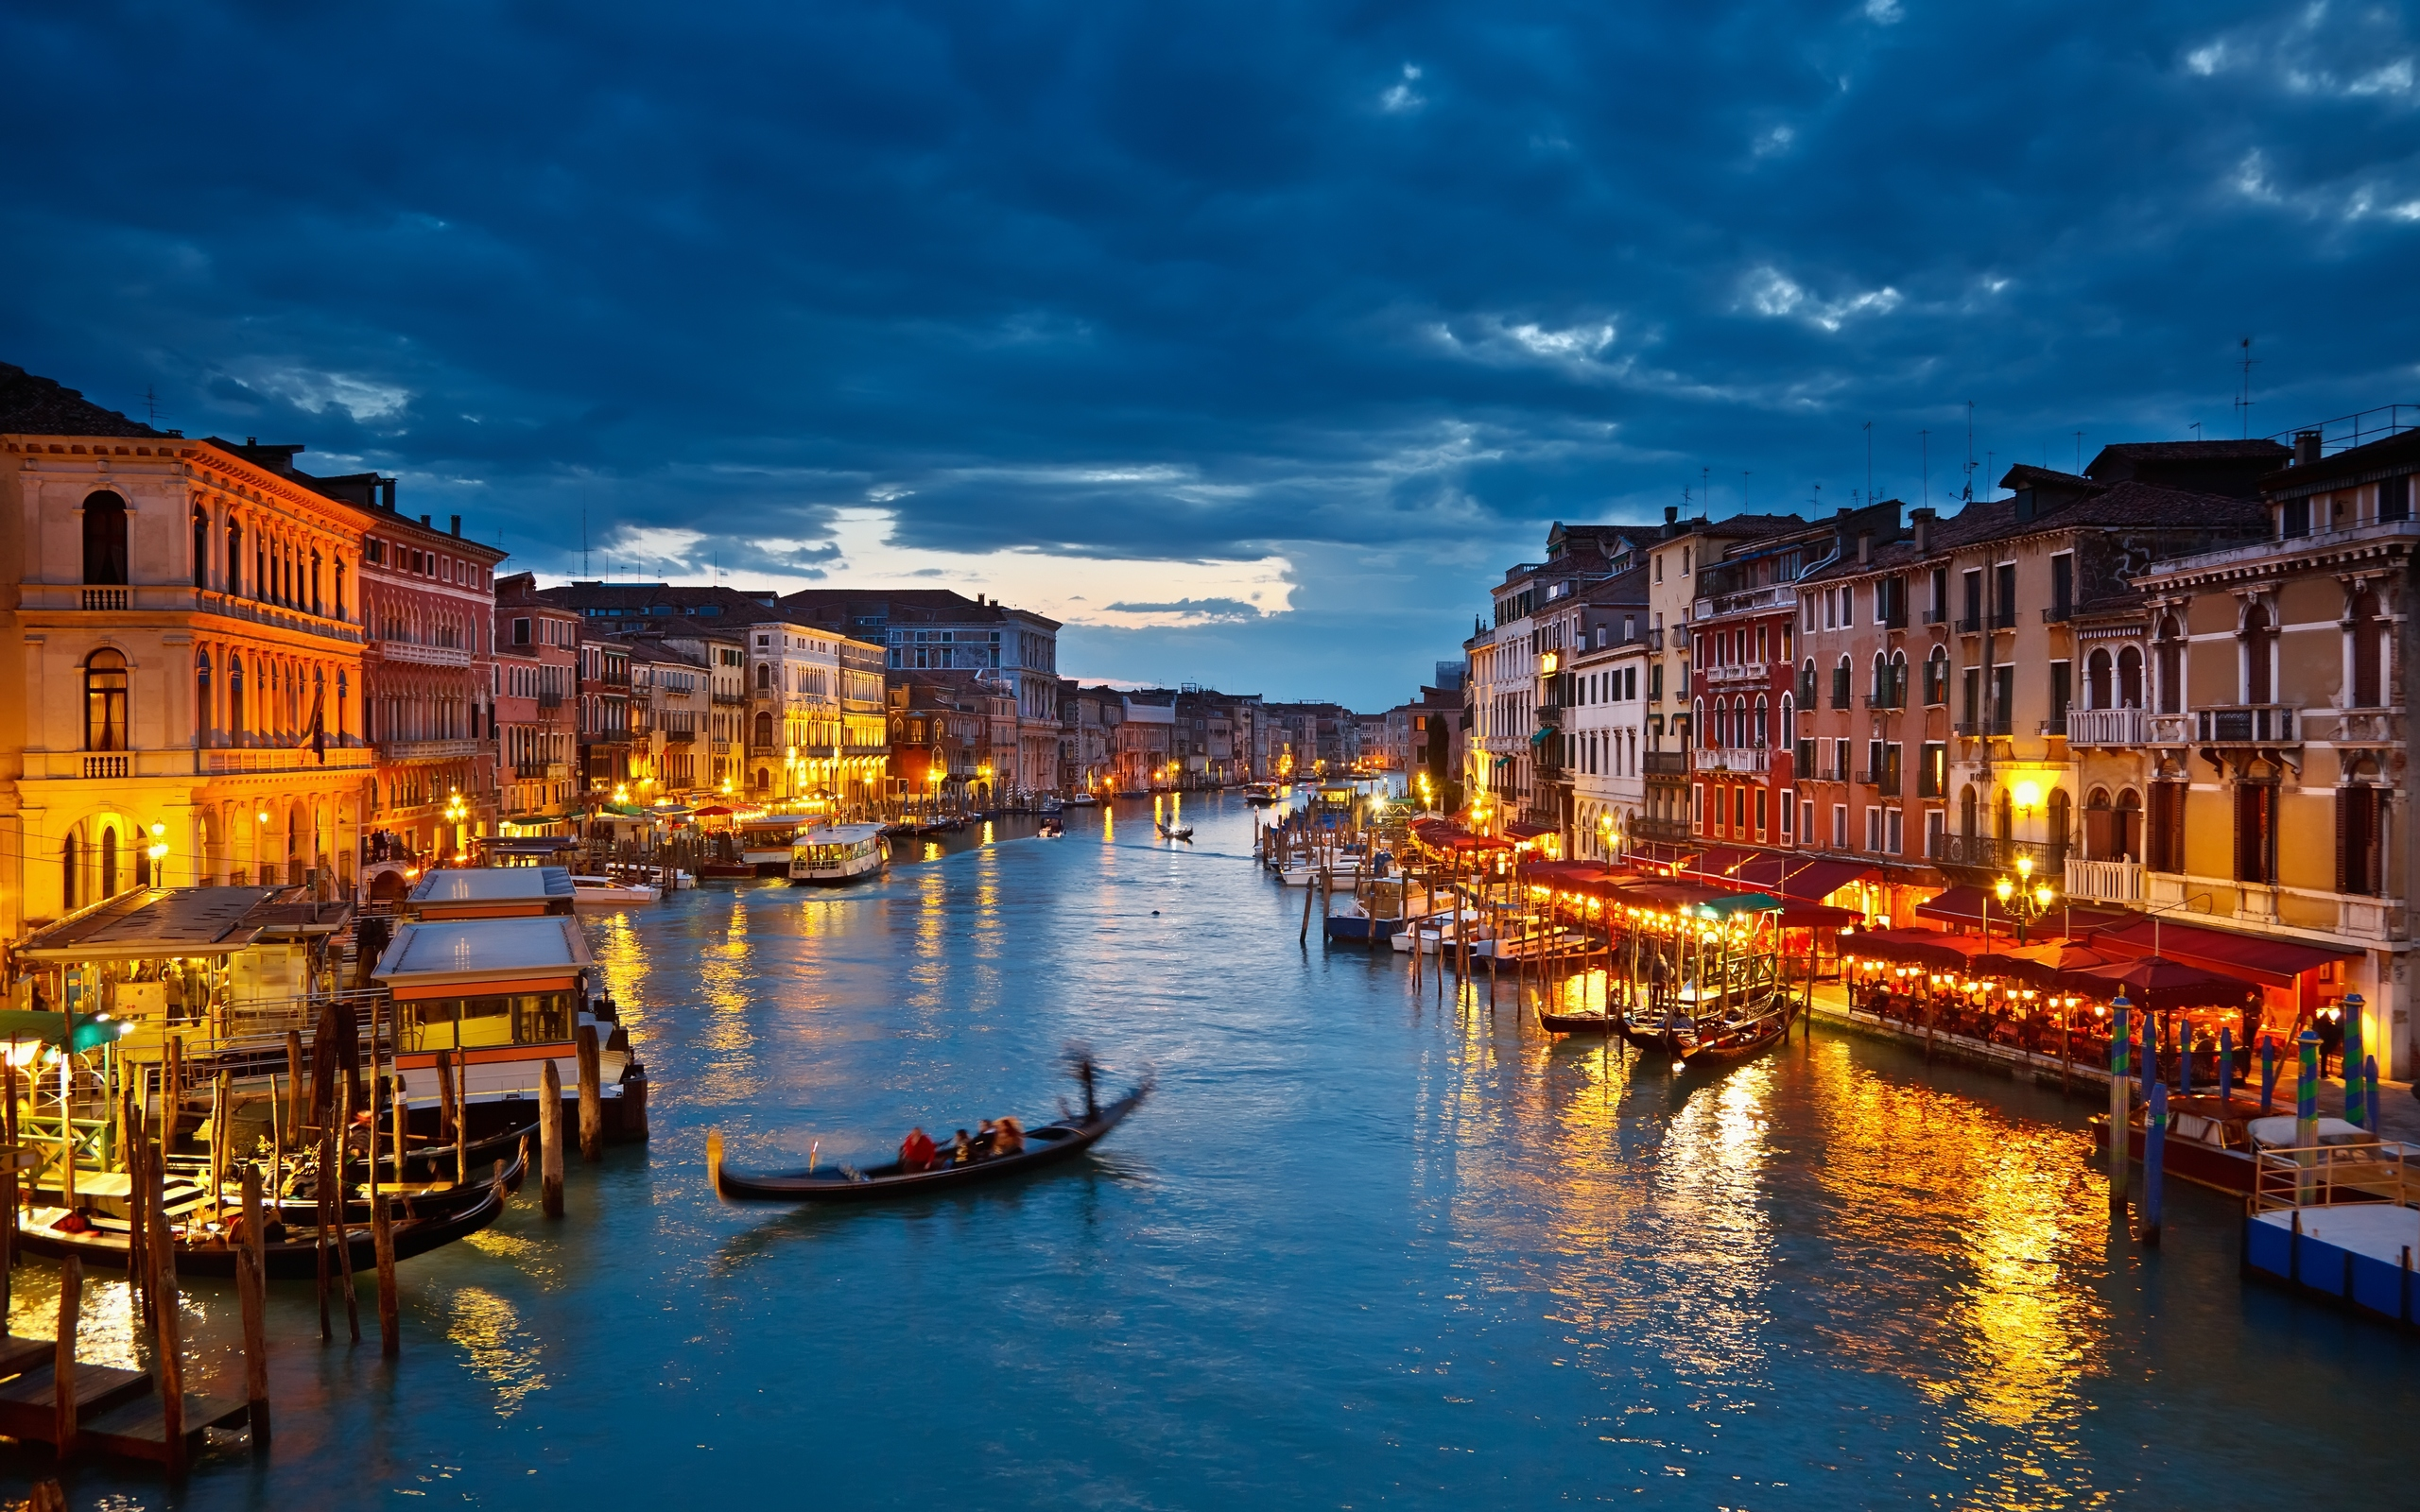 Romantic Venice At Night HD Wallpaper Background Images 2560x1600